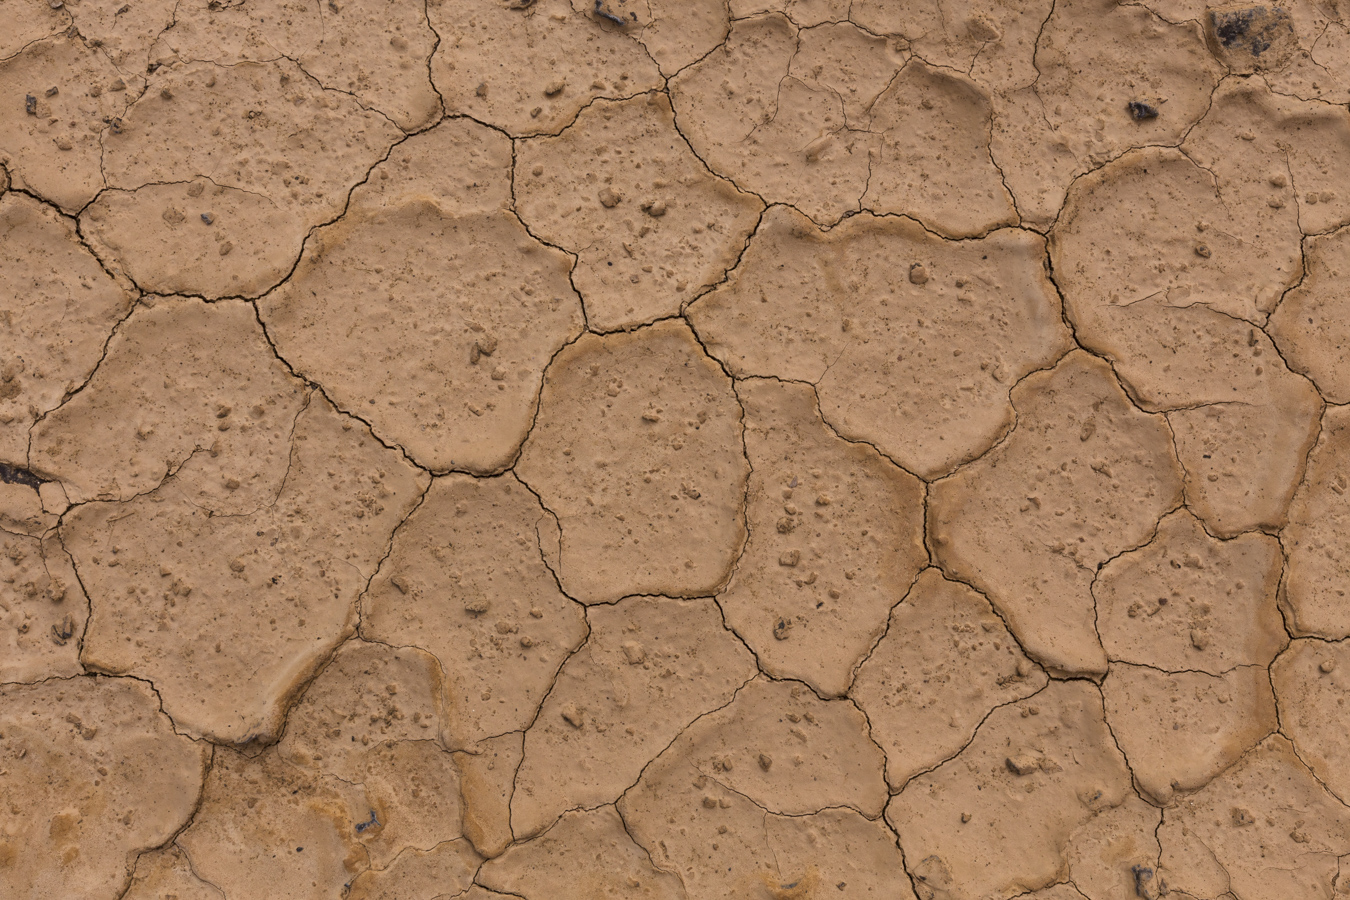 Very dry riverbed